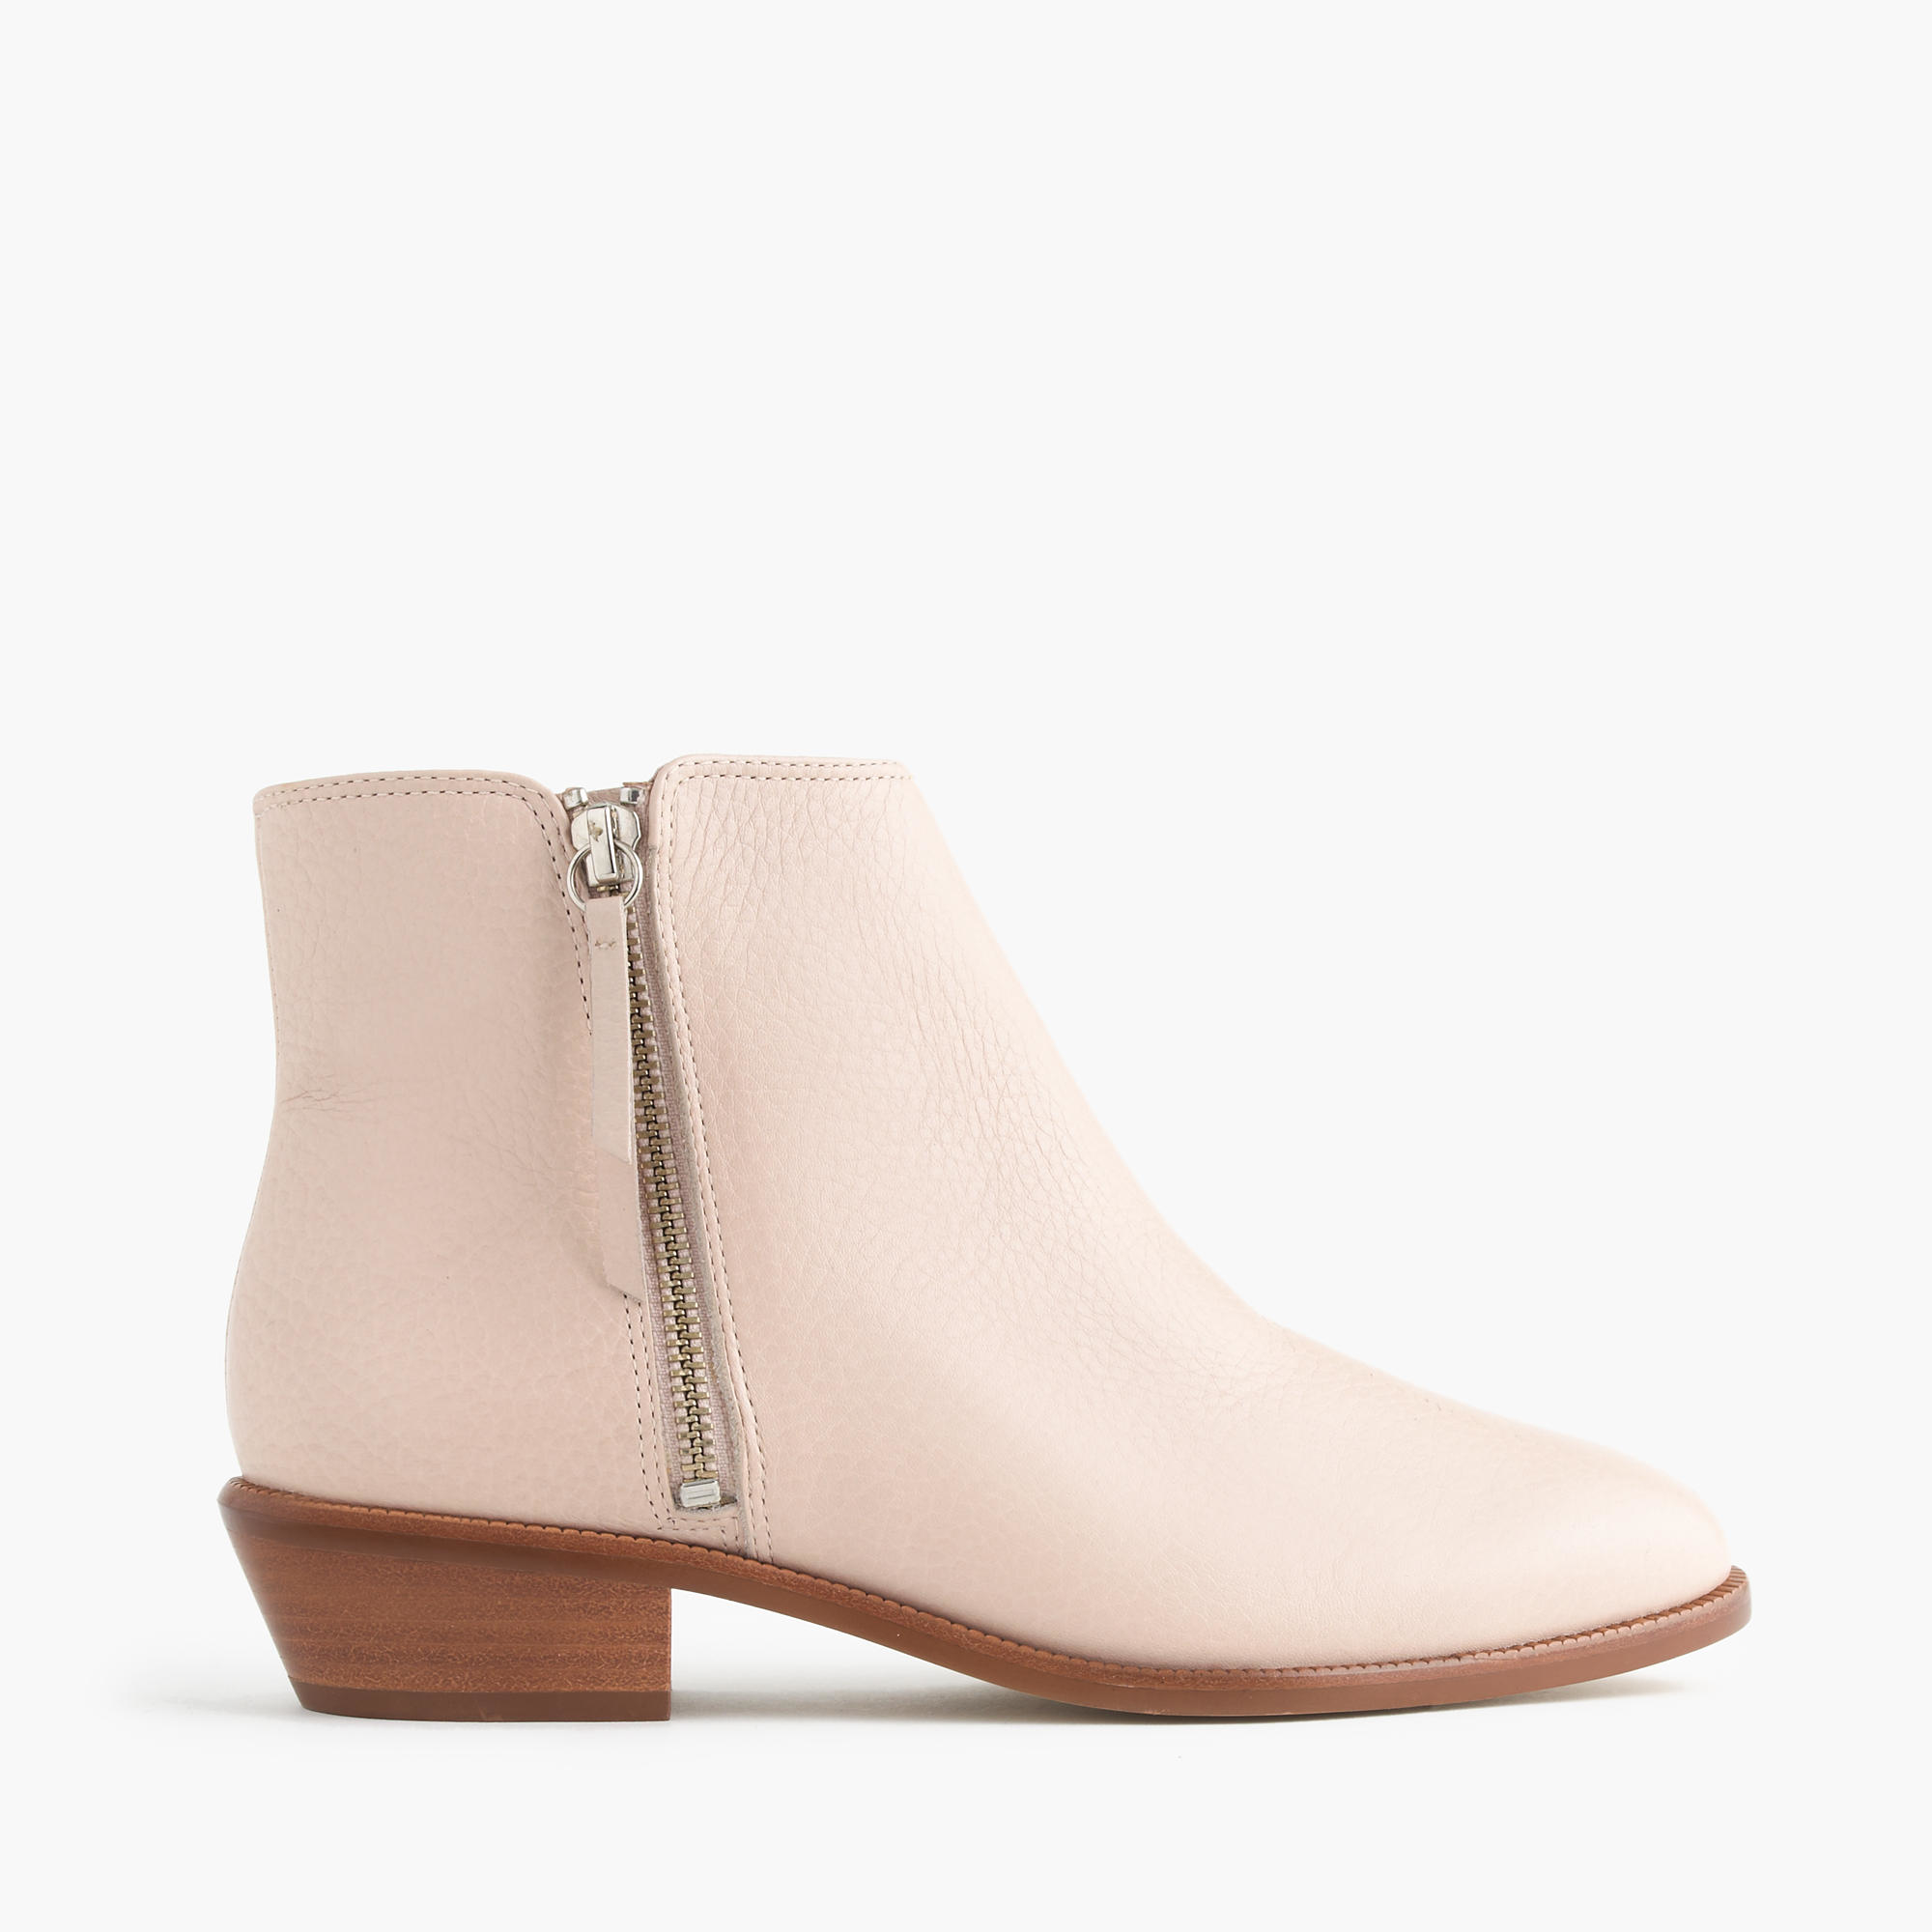 j crew frankie tumbled leather ankle boots in pink desert